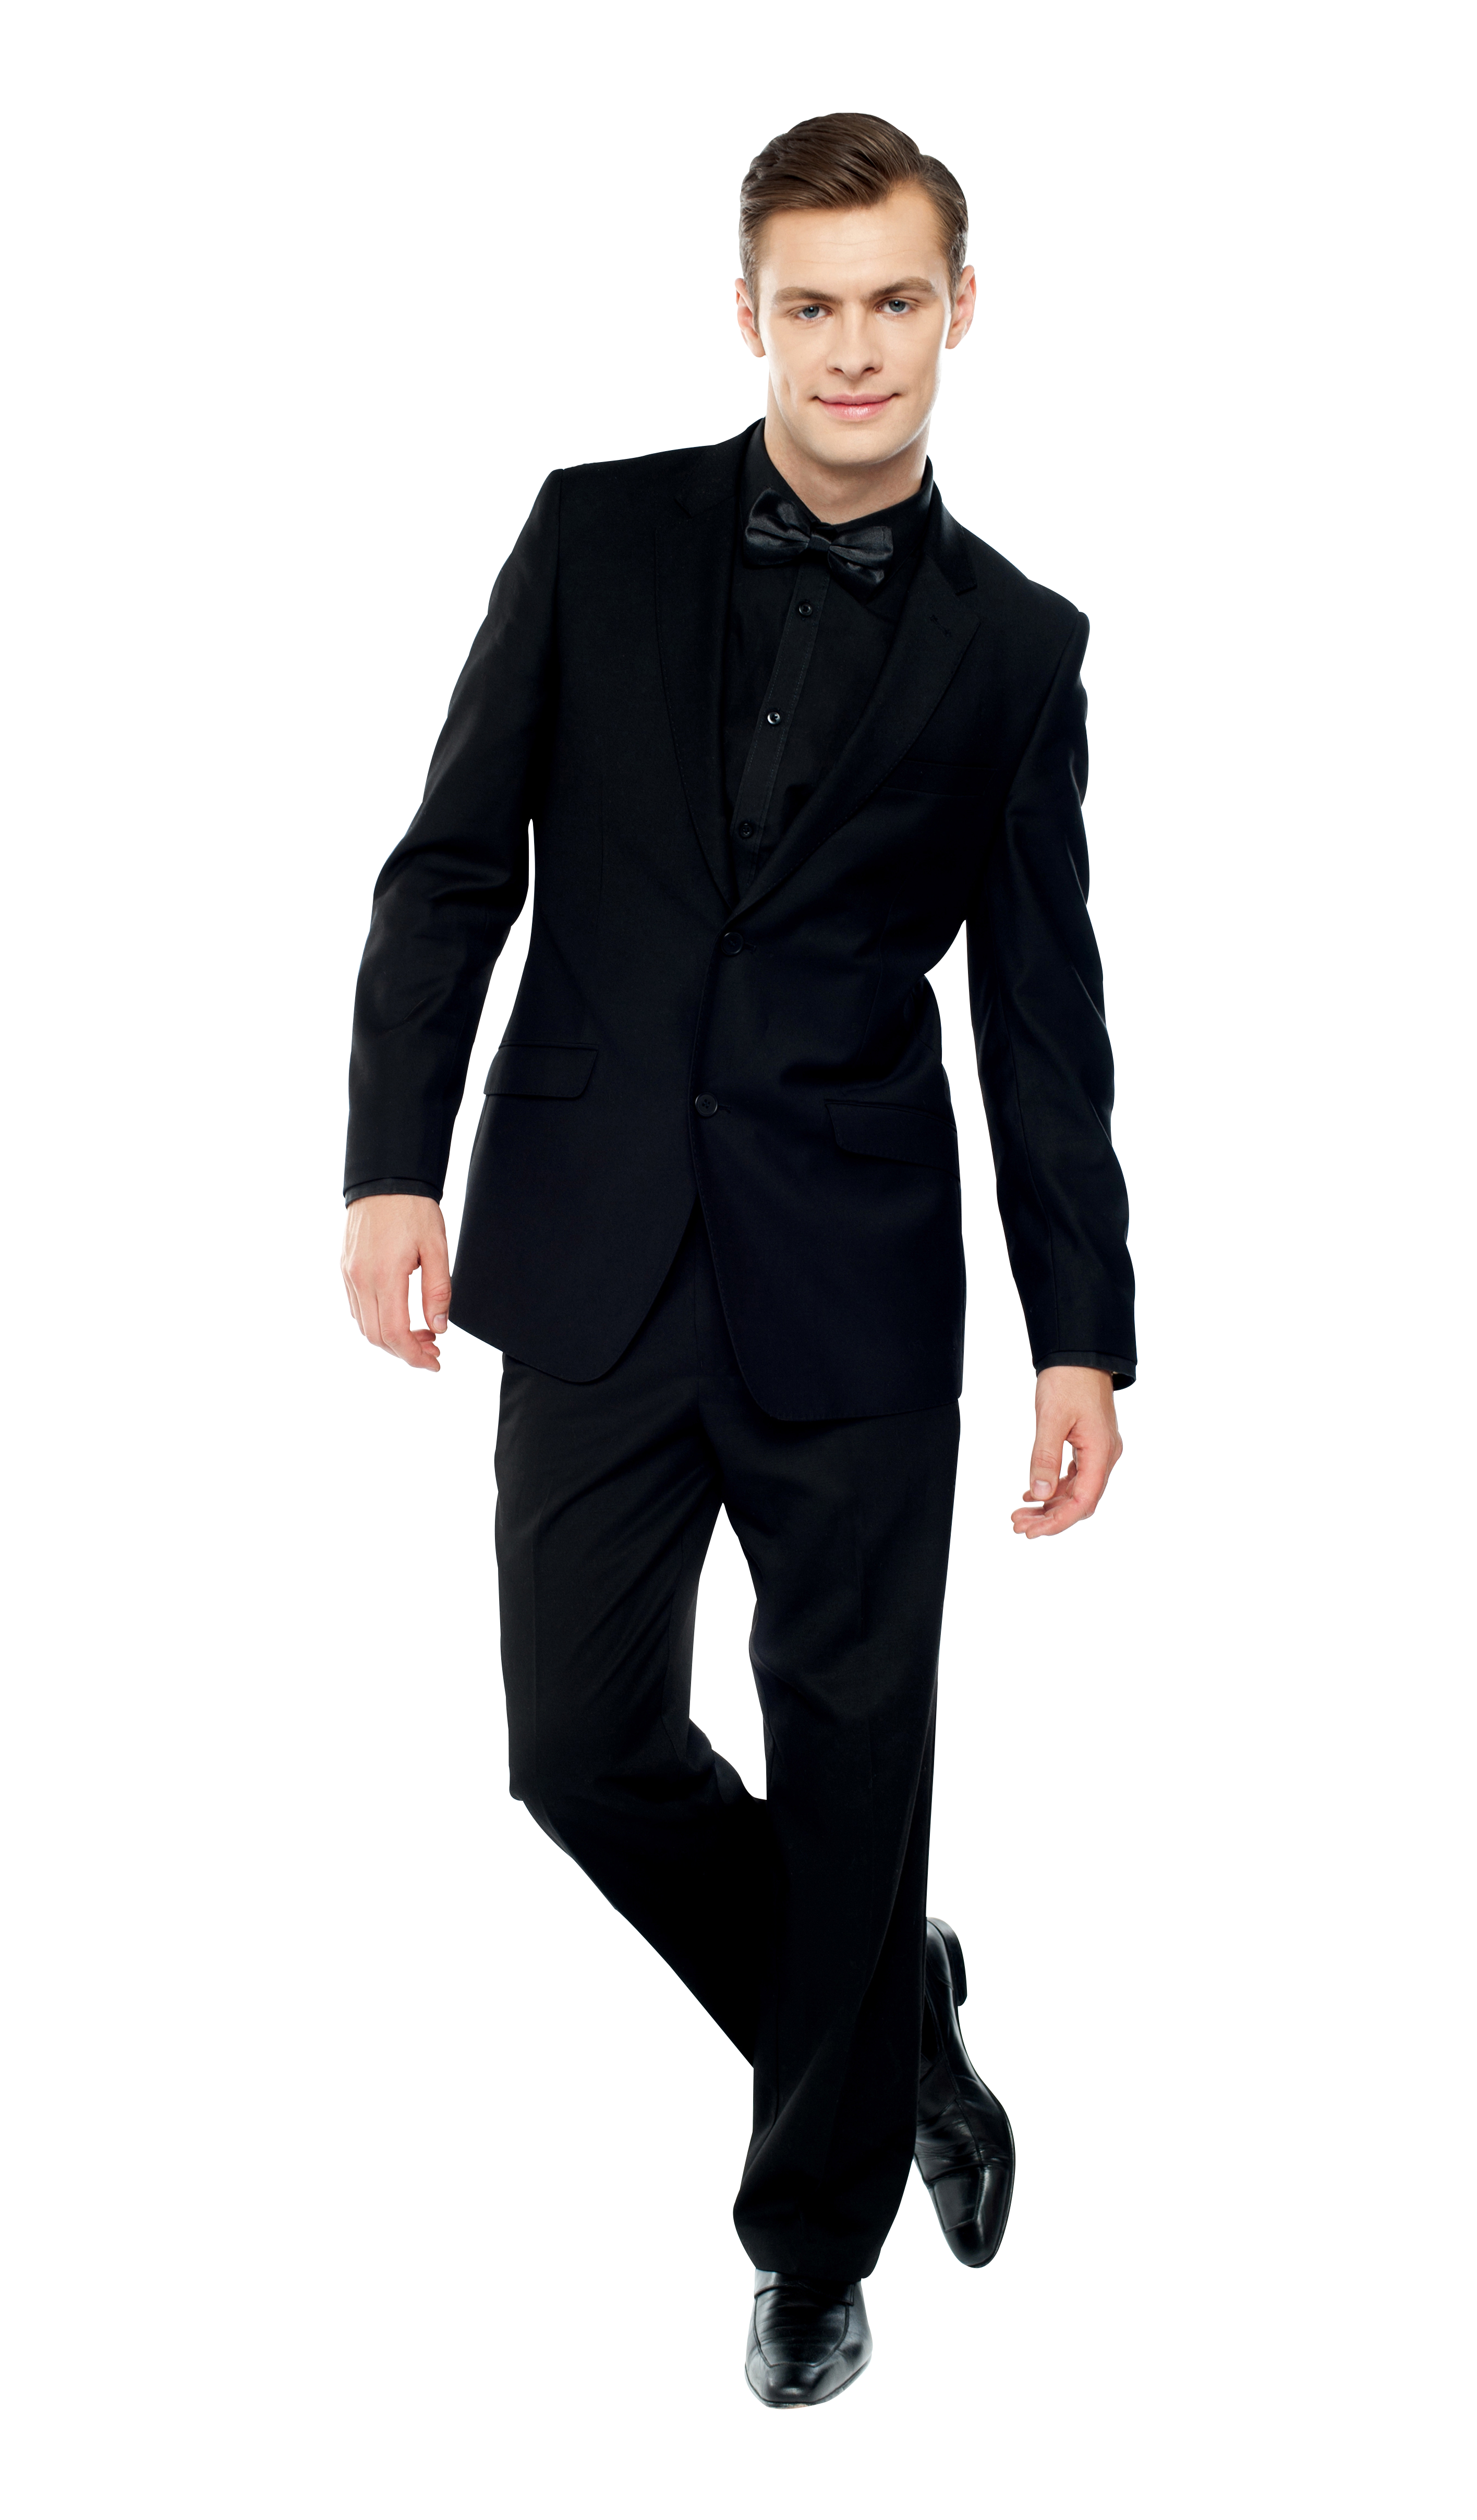 Men In Suit HD Free PNG Image - Man HD PNG